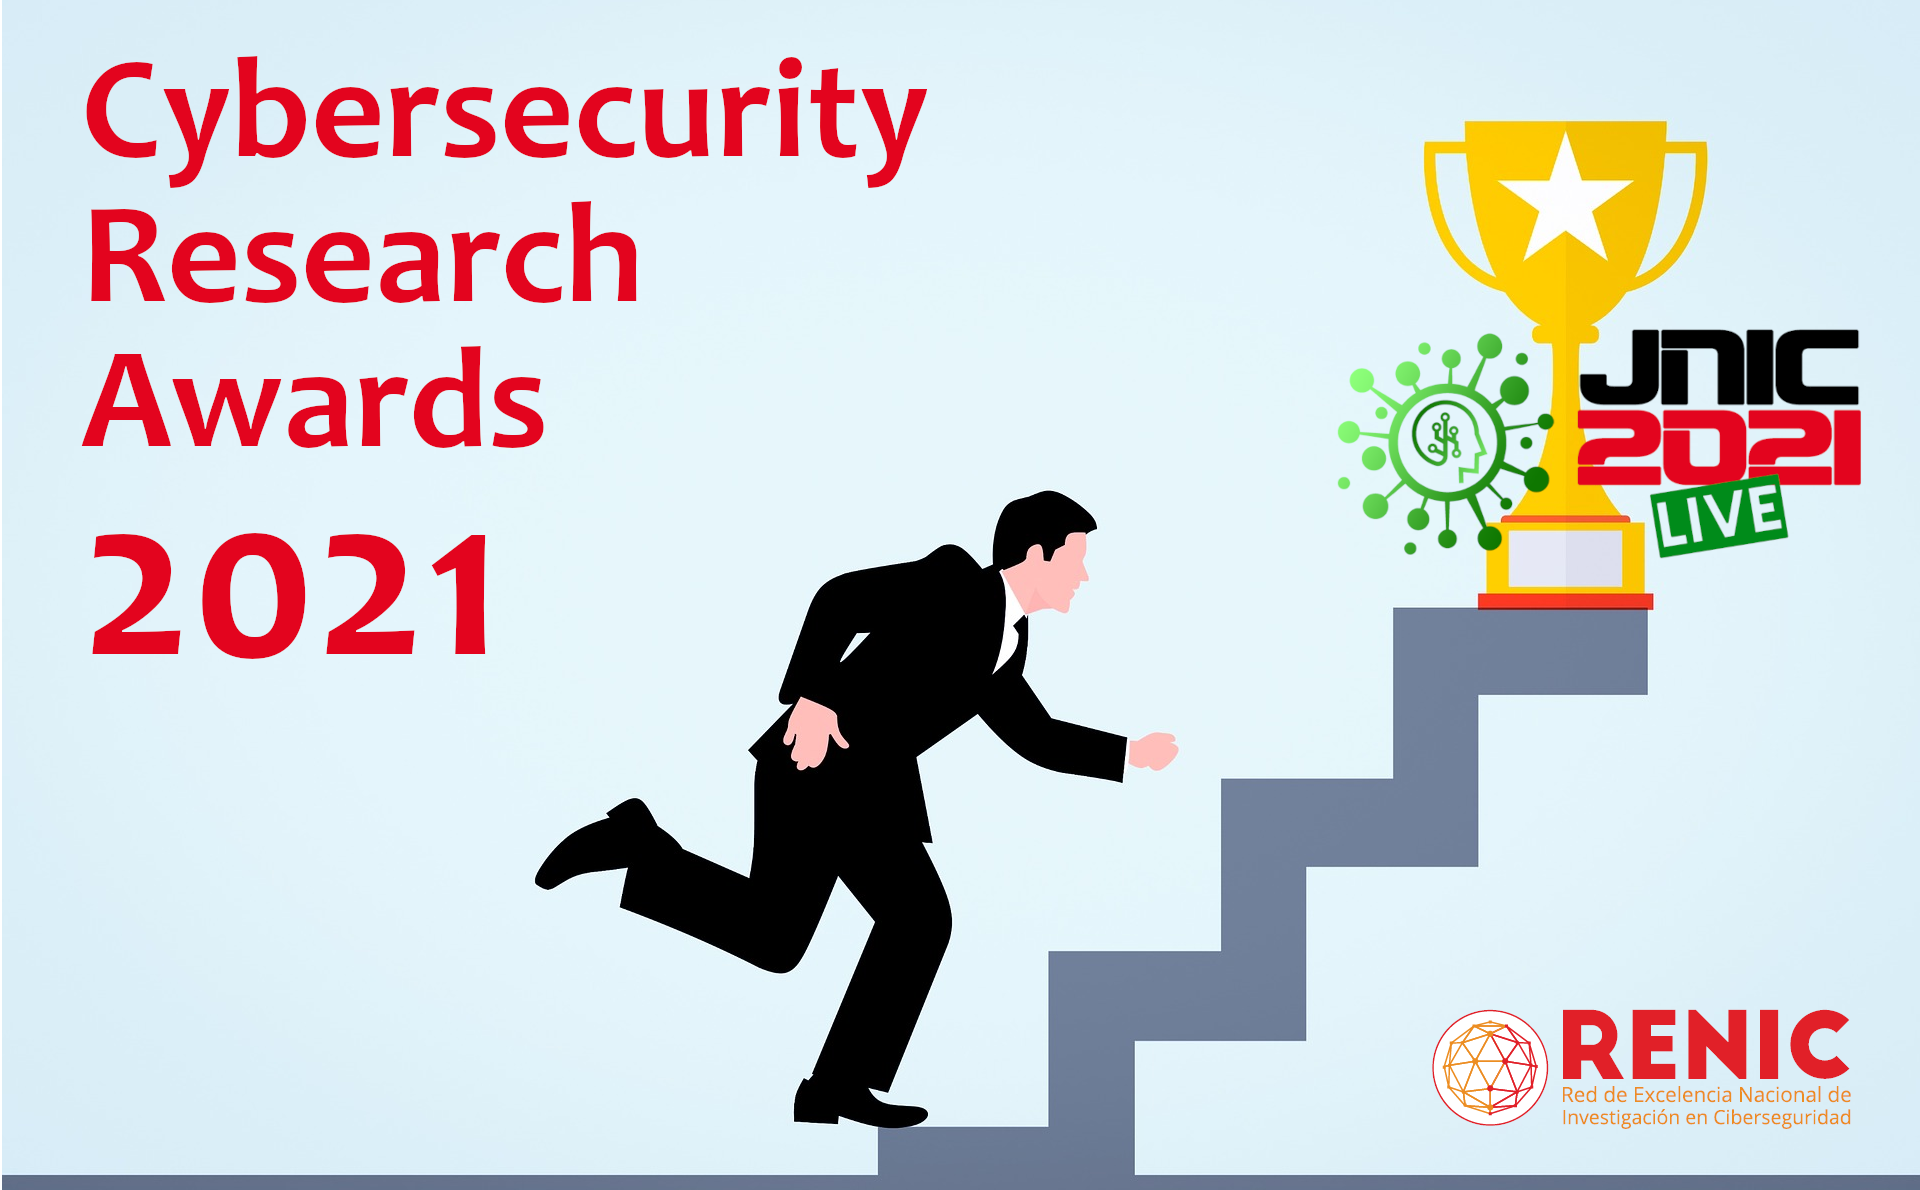 Cybersecurity Research Awards 2021 convened